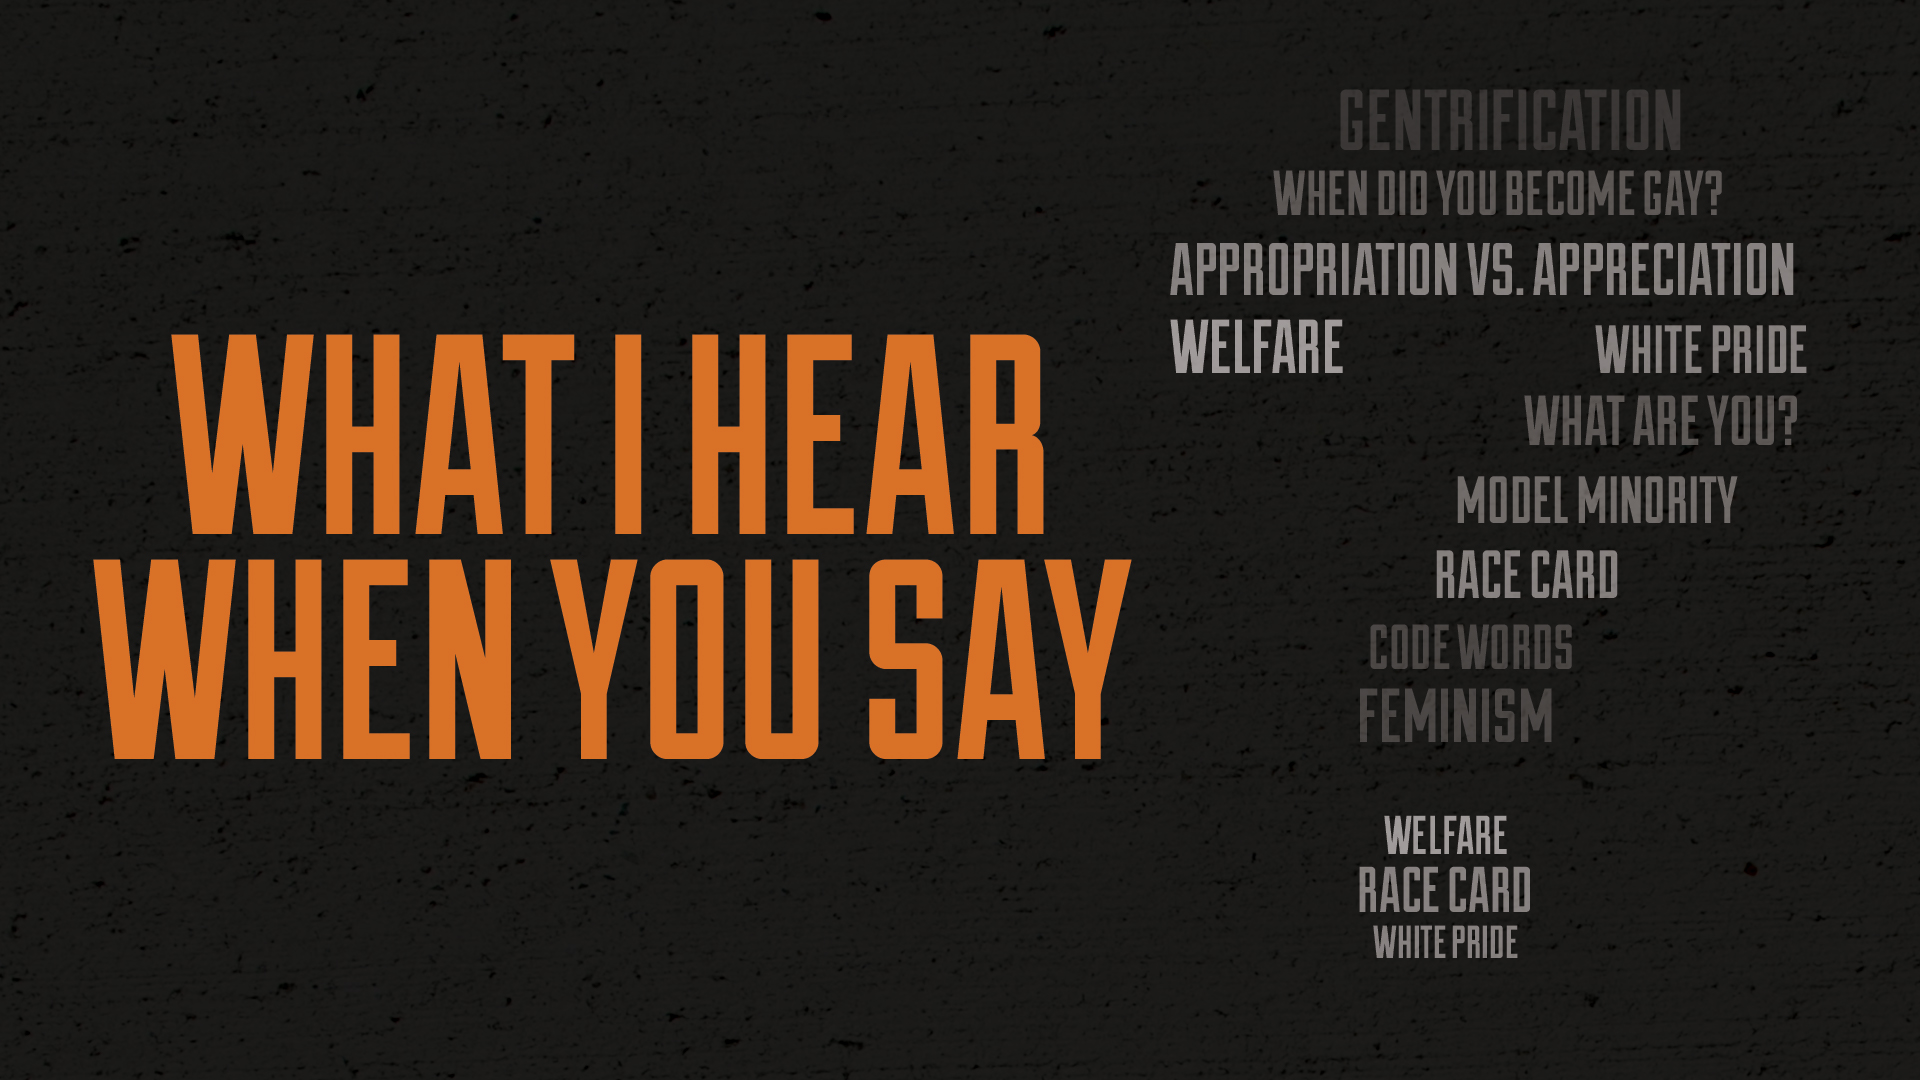 White Pride | Watch The Series | What I Hear When You Say